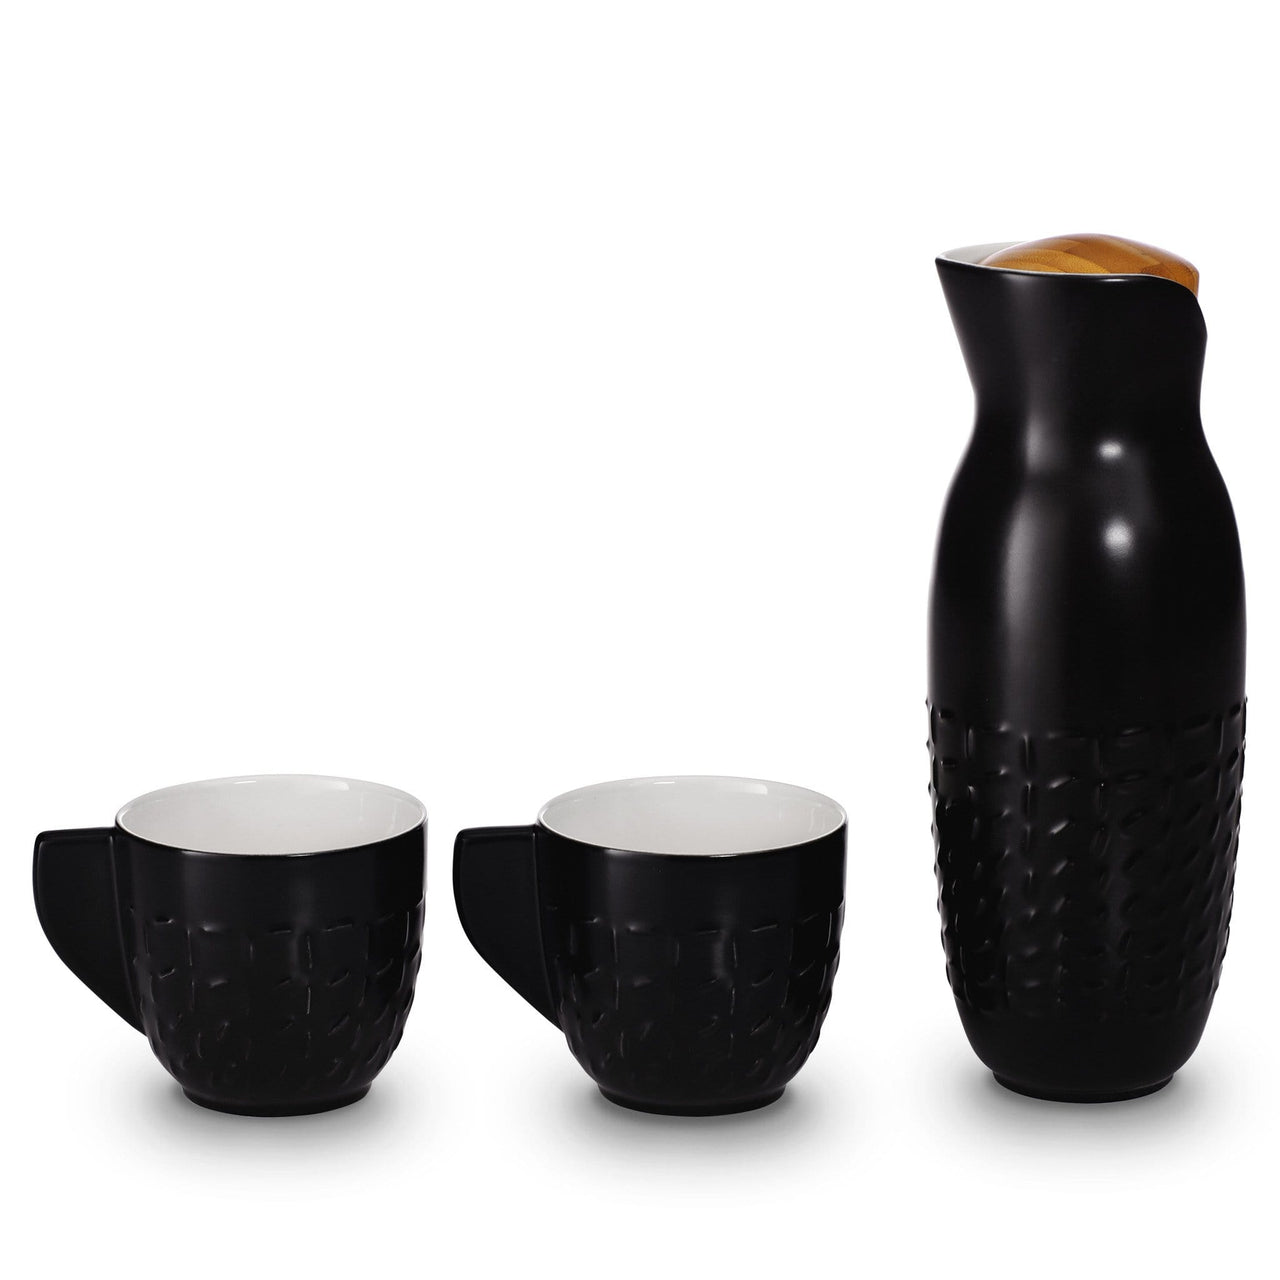 Acera Liven Coffee & Tea Accessories Black Footprint Carafe With Handles Set